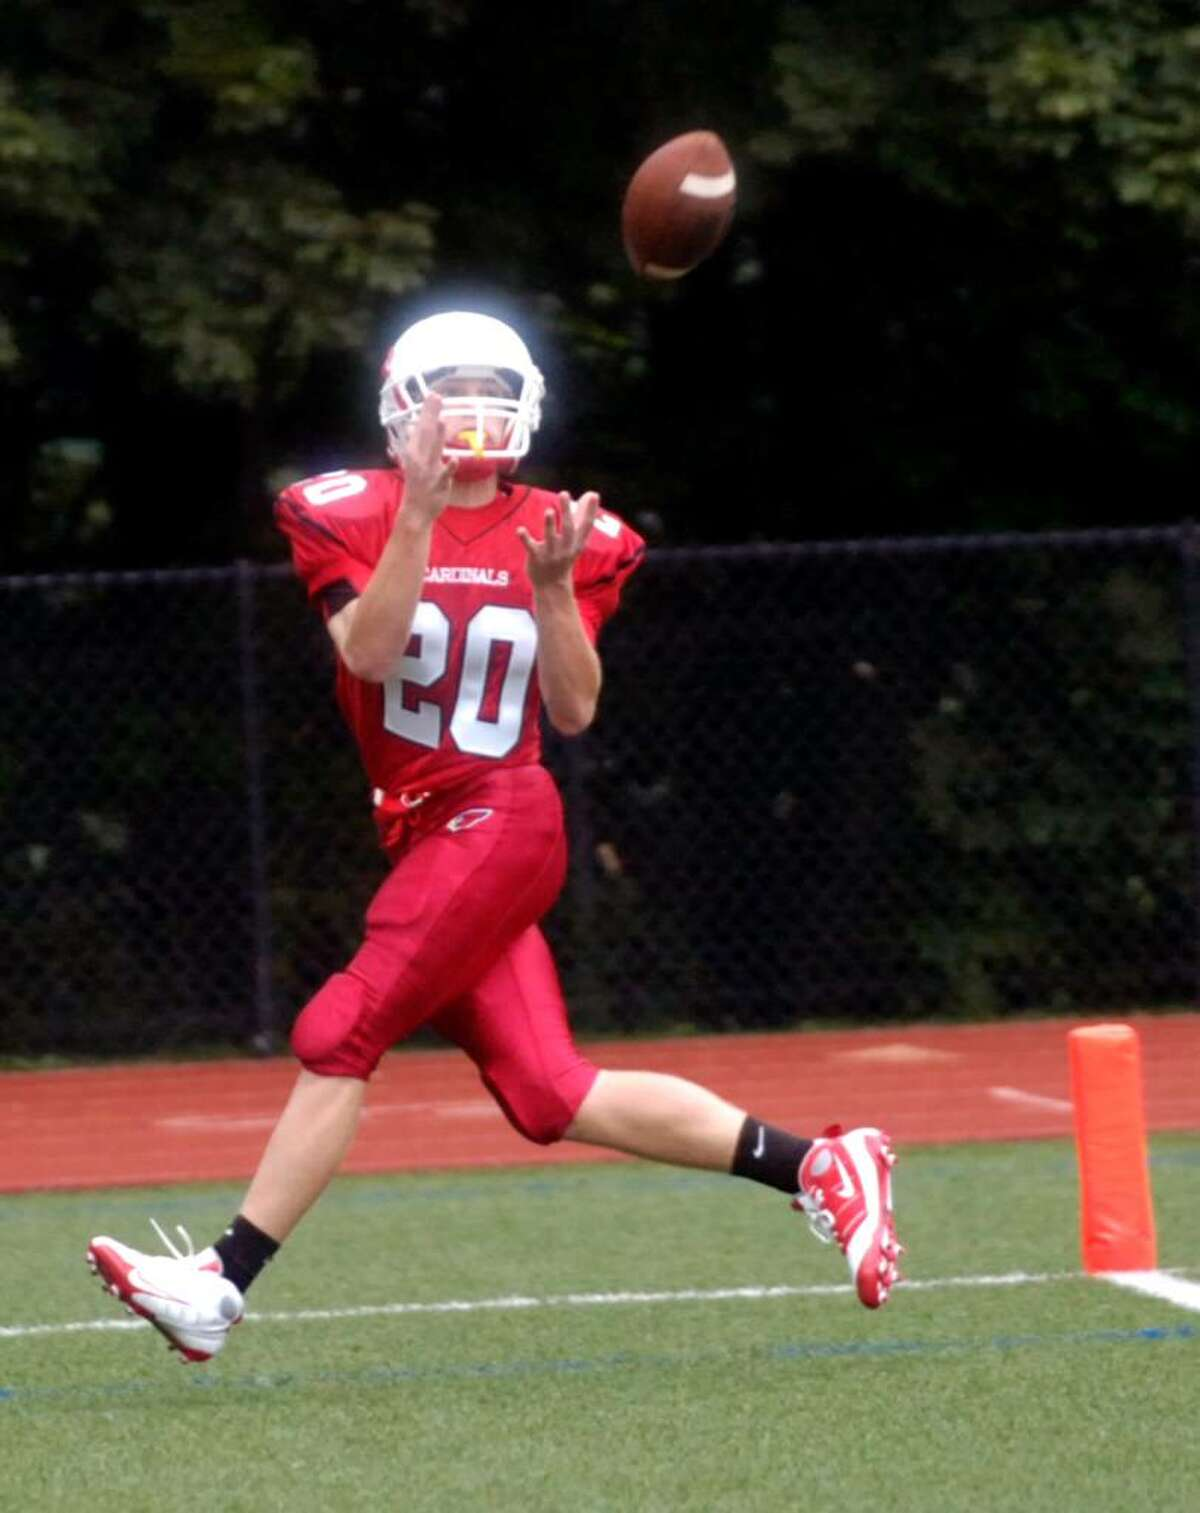 Greenwich High's Colin Dunster floats into the endzone to catch a touchdown pass as the Greenwich High football team hosts Harding High School for the Greenwich Homecoming game Saturday afternoon, Oct. 3, 2009.